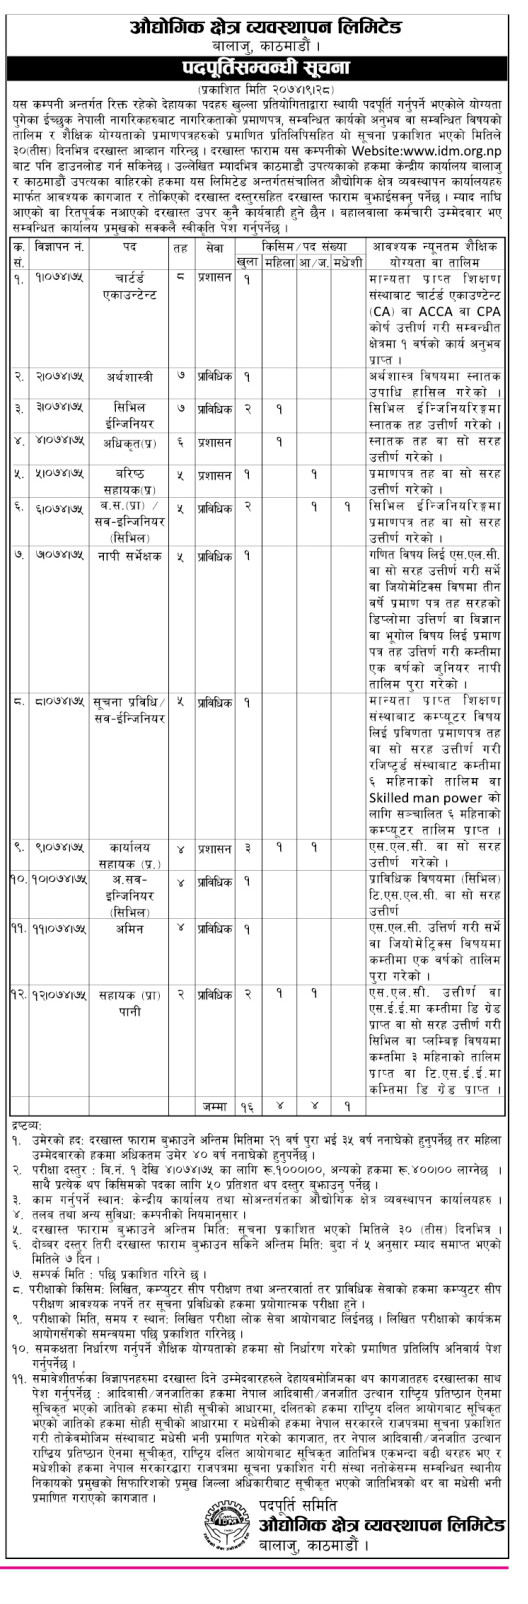 Charter Accountant, Civil Engineer, Officer & Other